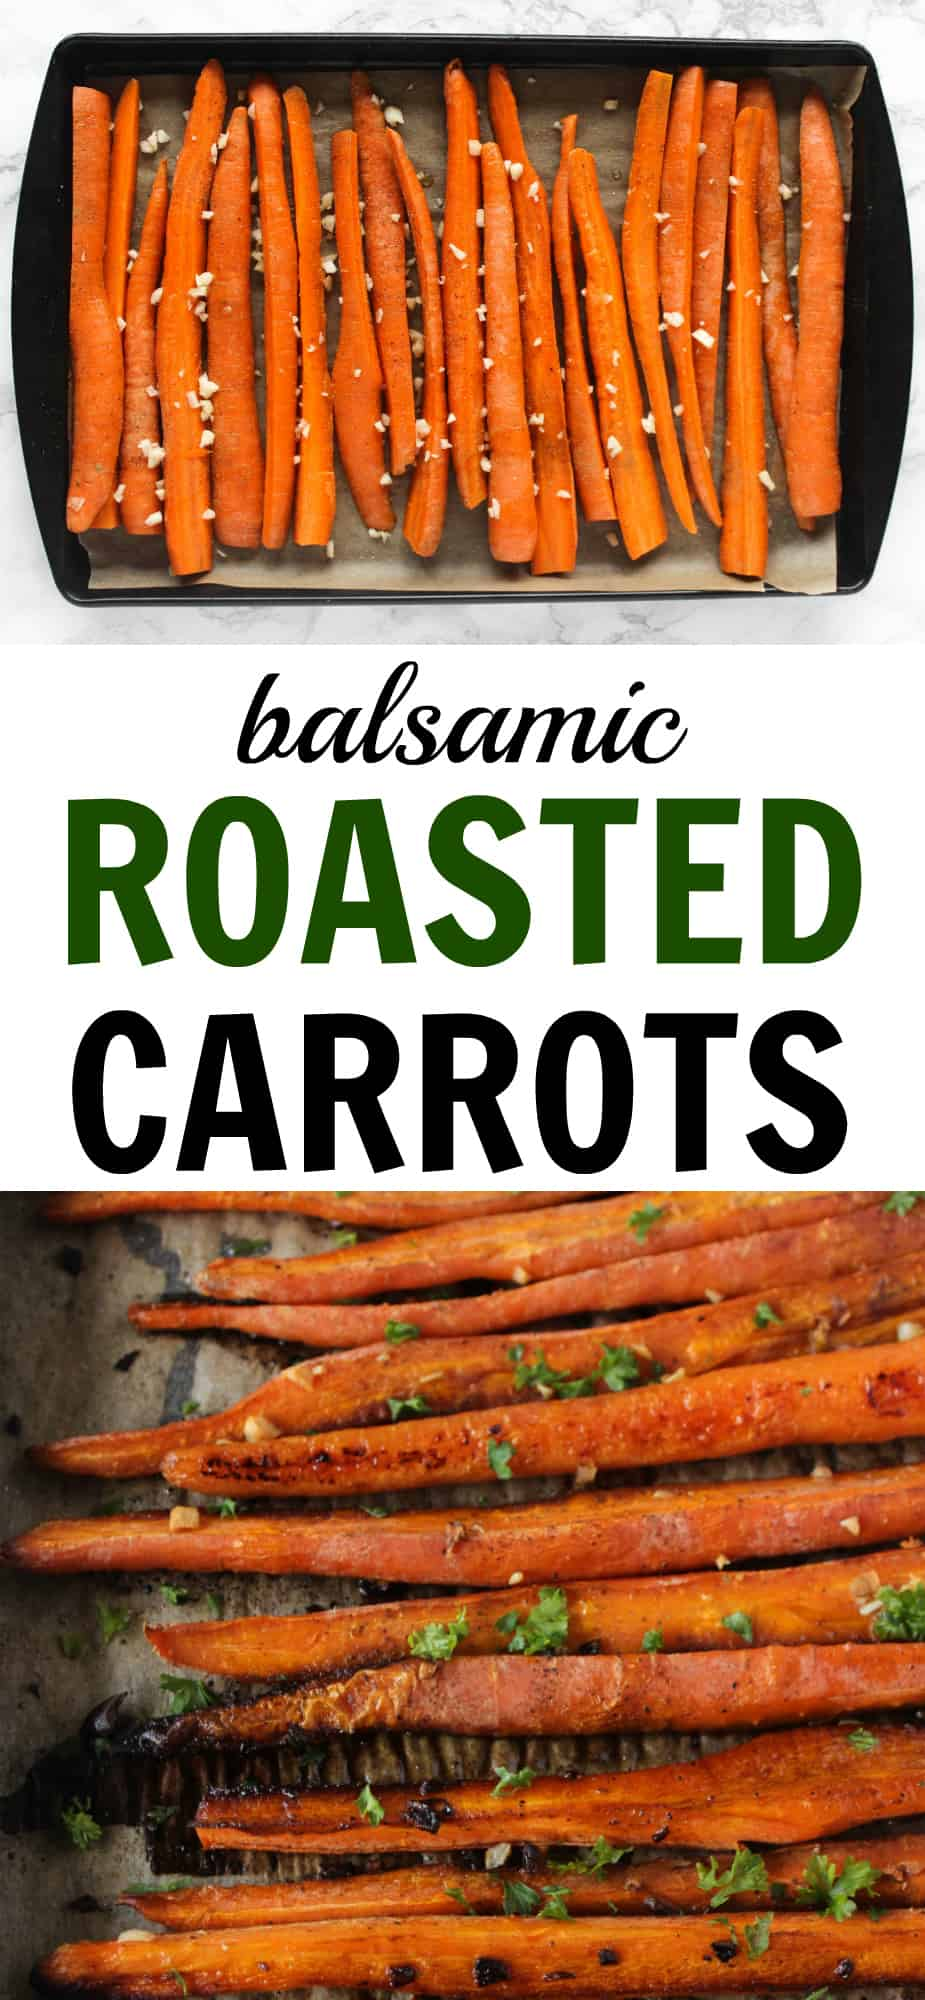 10 minutes is all it takes to prep these crispy balsamic roasted carrots! // www.healthy-liv.com